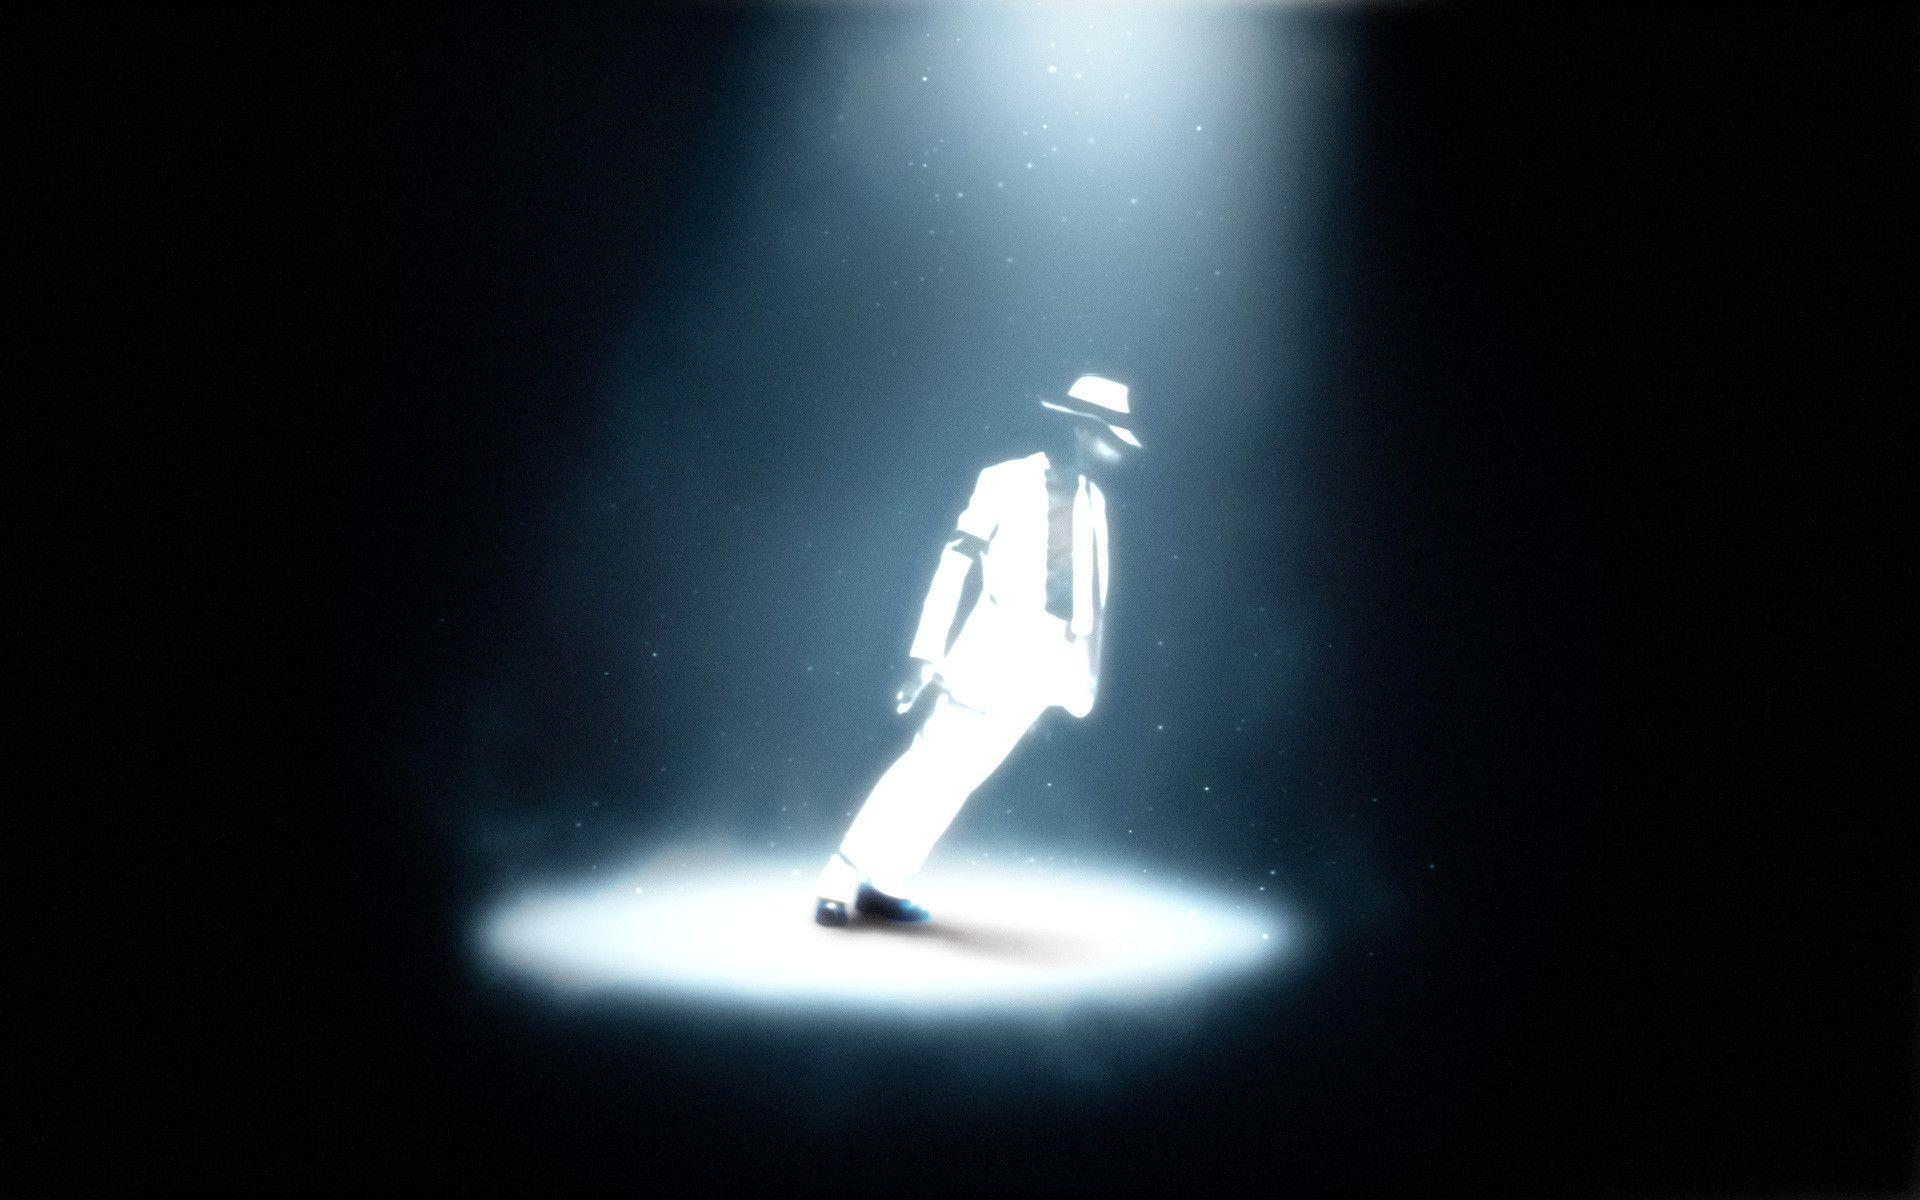 Michael Jackson Wallpapers - Full HD wallpaper search - page 3